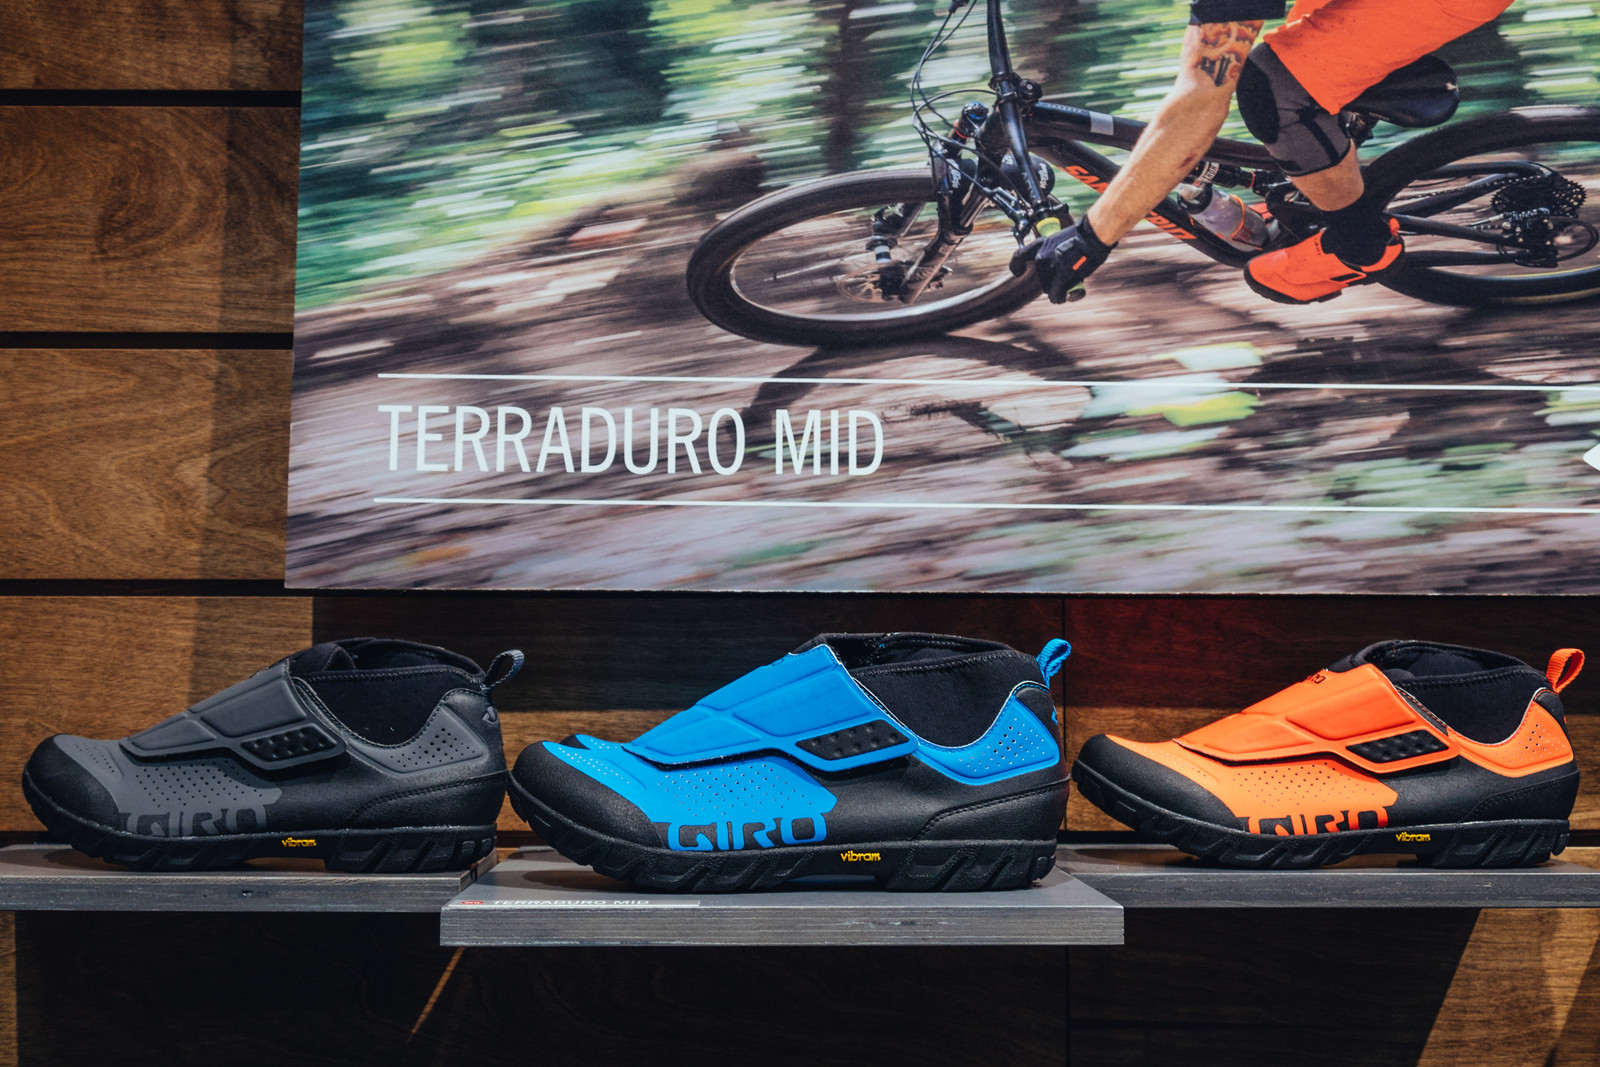 Giro Terraduro Mid Shoe - INTERBIKE - 2017 Mountain Bike Apparel and Protective Gear - Mountain Biking Pictures - Vital MTB